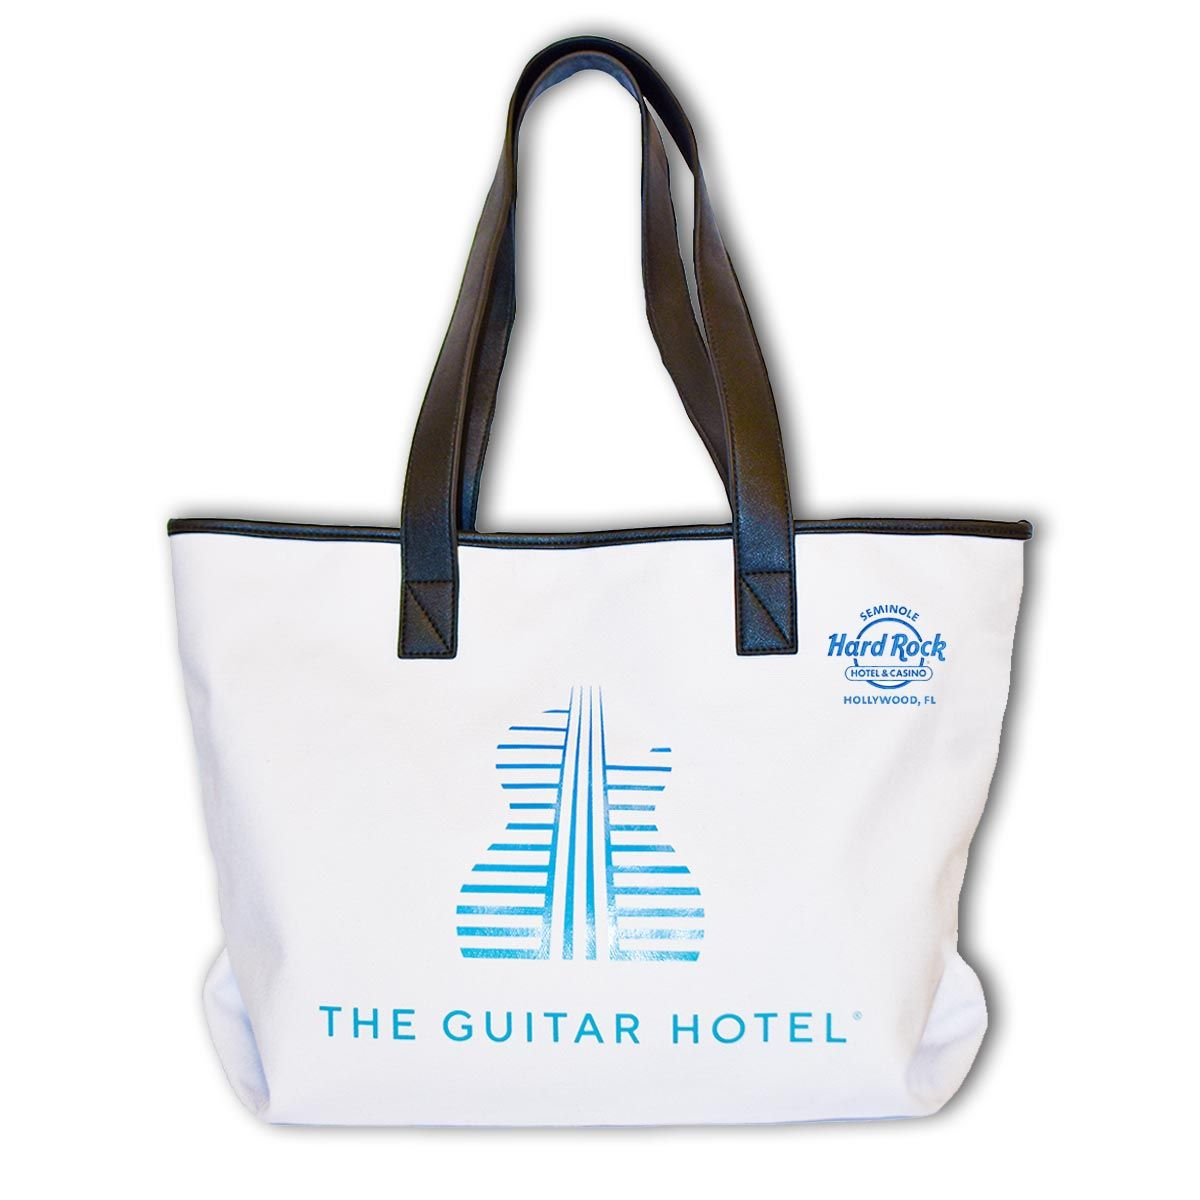 Hollywood Guitar Hotel Tote